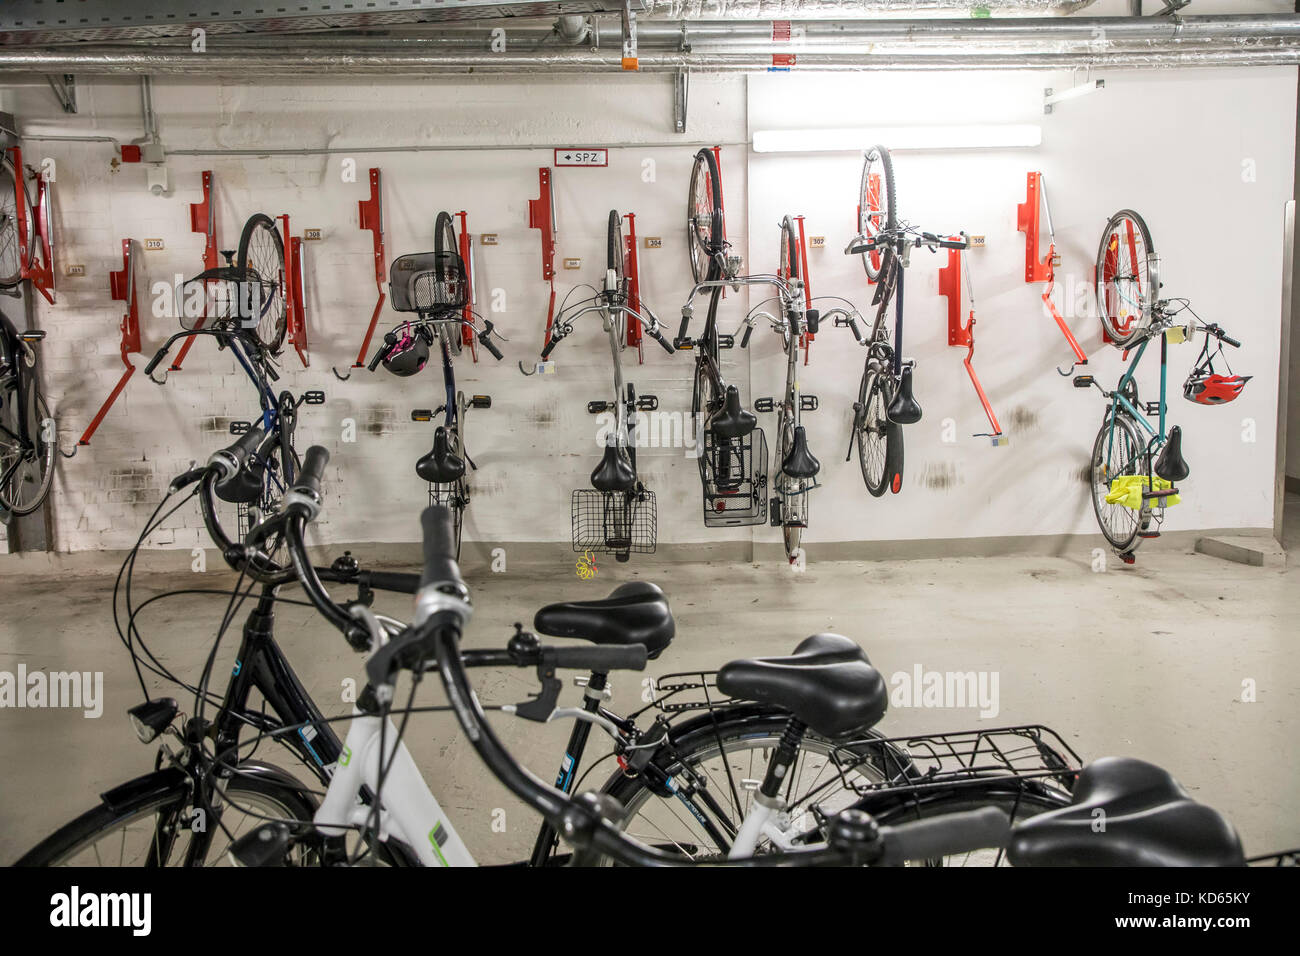 Public bike storage, at the central station in  Essen, Germany, bicycles can be parked here, securely, - Stock Image